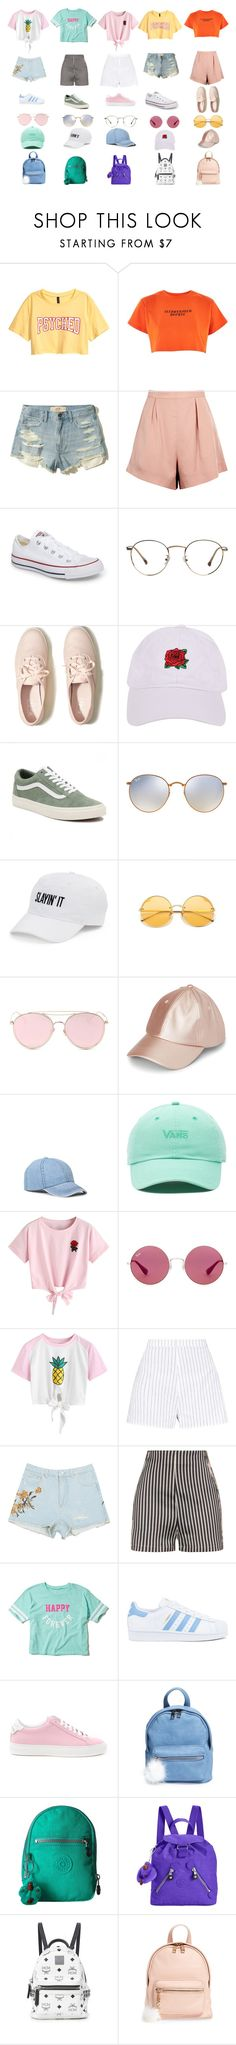 """""""BBMOD"""" by kxjae on Polyvore featuring Illustrated People, Hollister Co., Finders Keepers, Converse, Armitage Avenue, Vans, Ray-Ban, SO, LMNT and WithChic"""